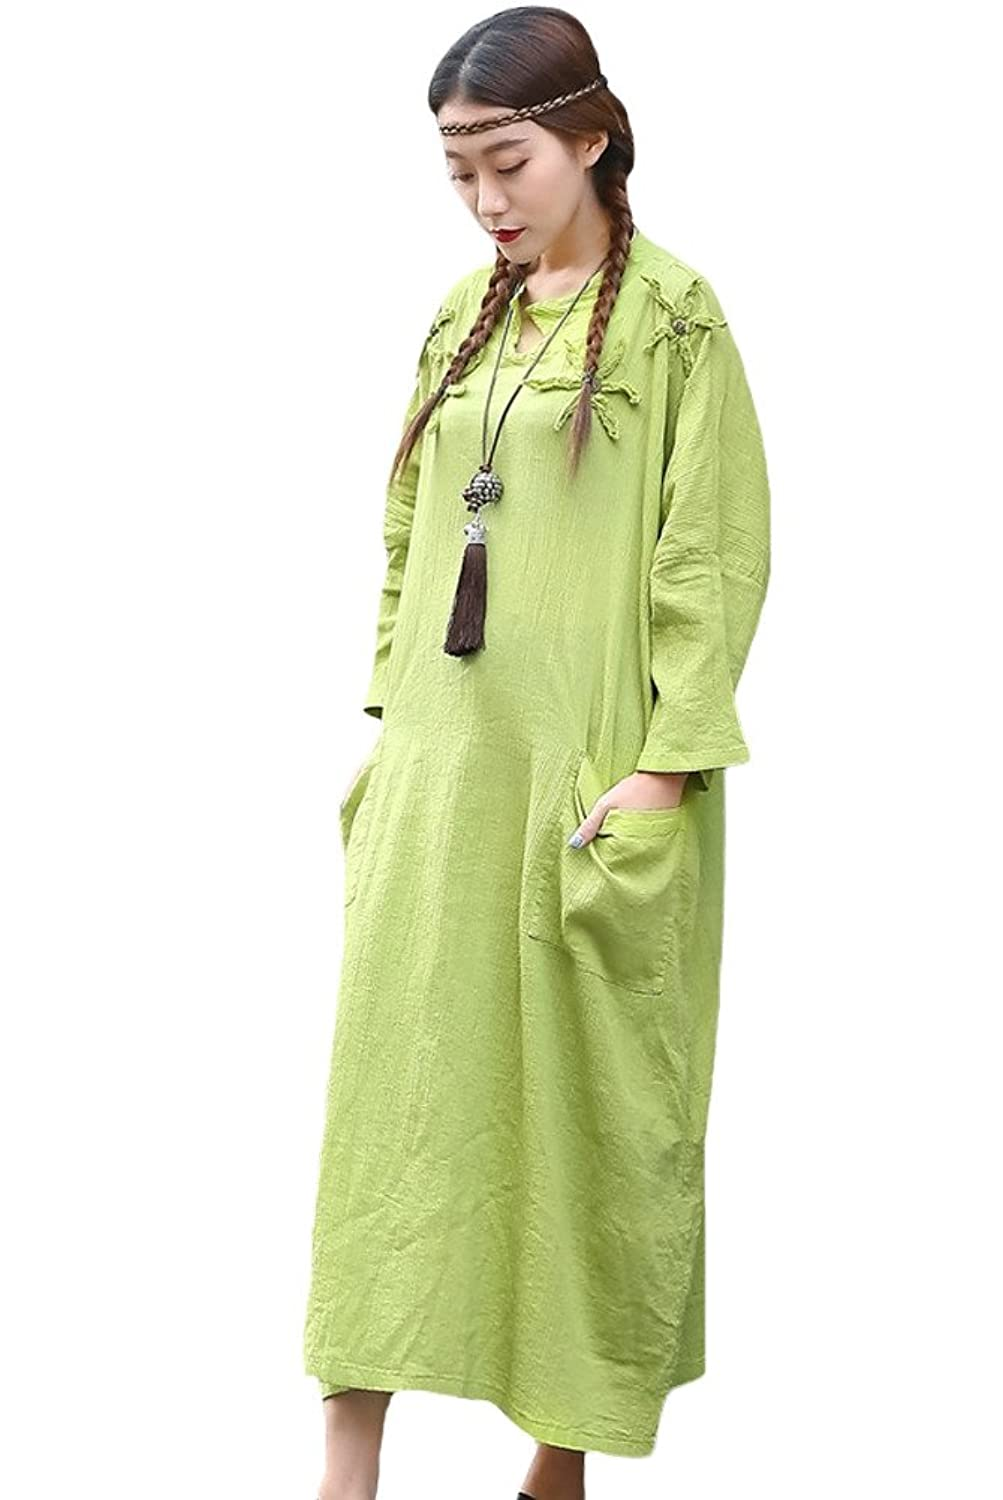 Vogstyle Women's Spring/Autumn New Embroidery Loose Pullover Style Dresses Solid Color